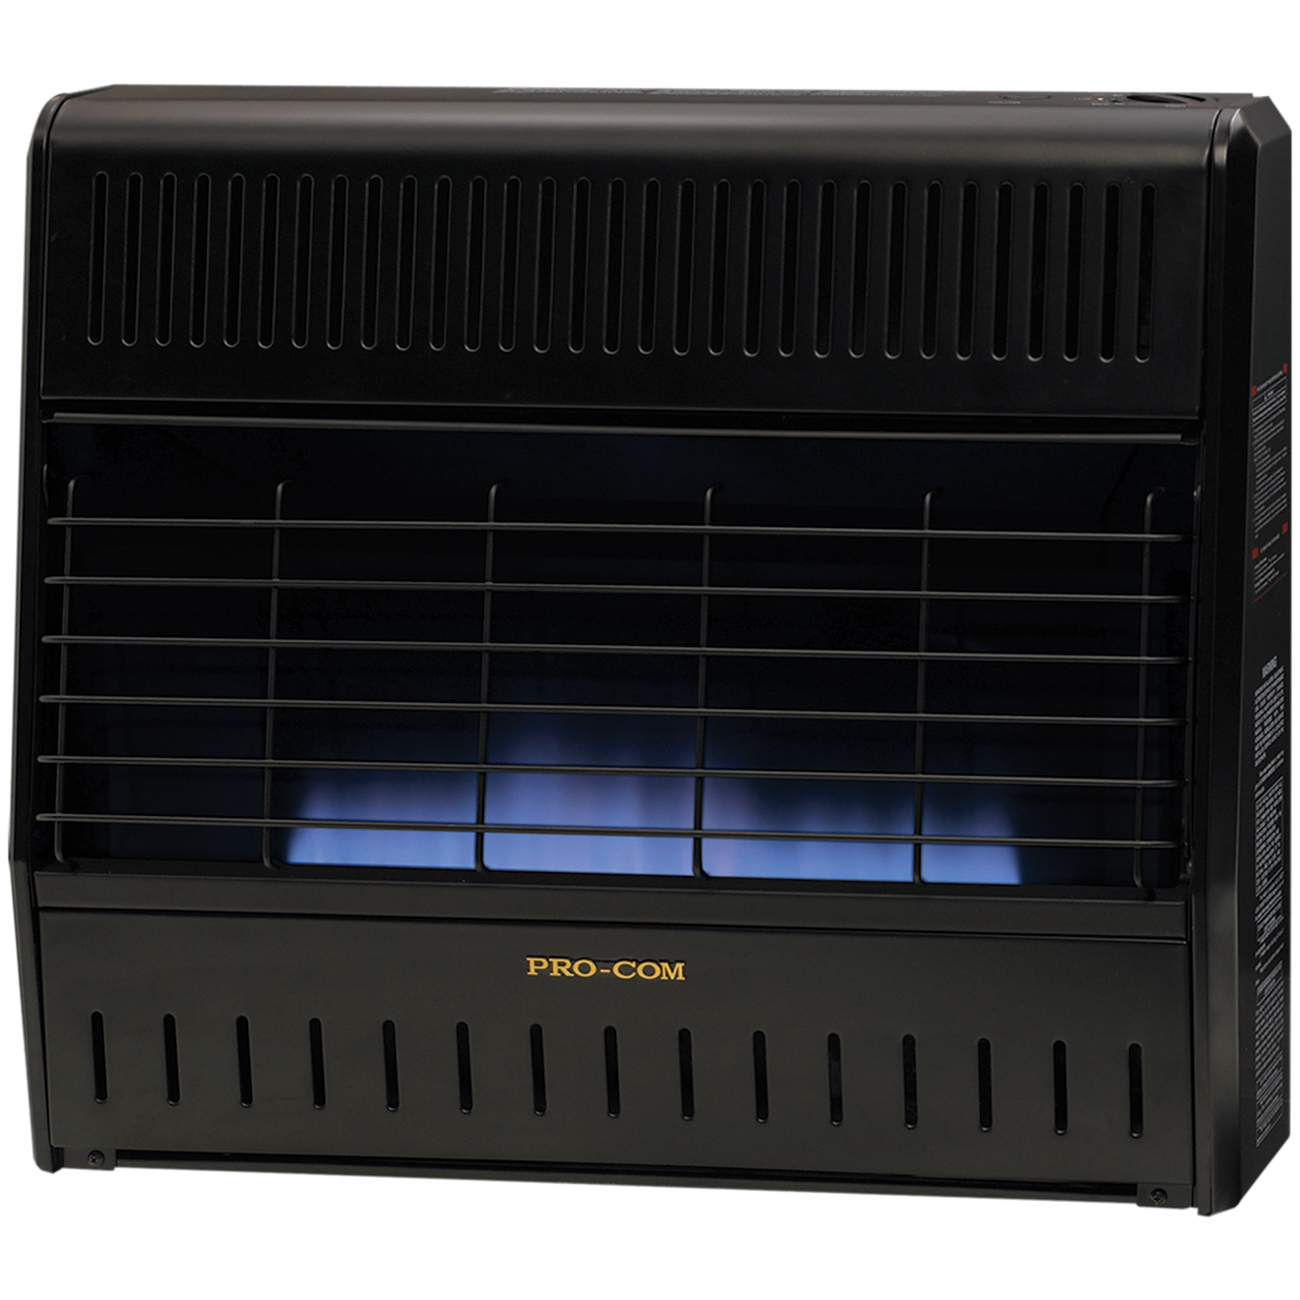 Ventless Blue Flame Heaters 65